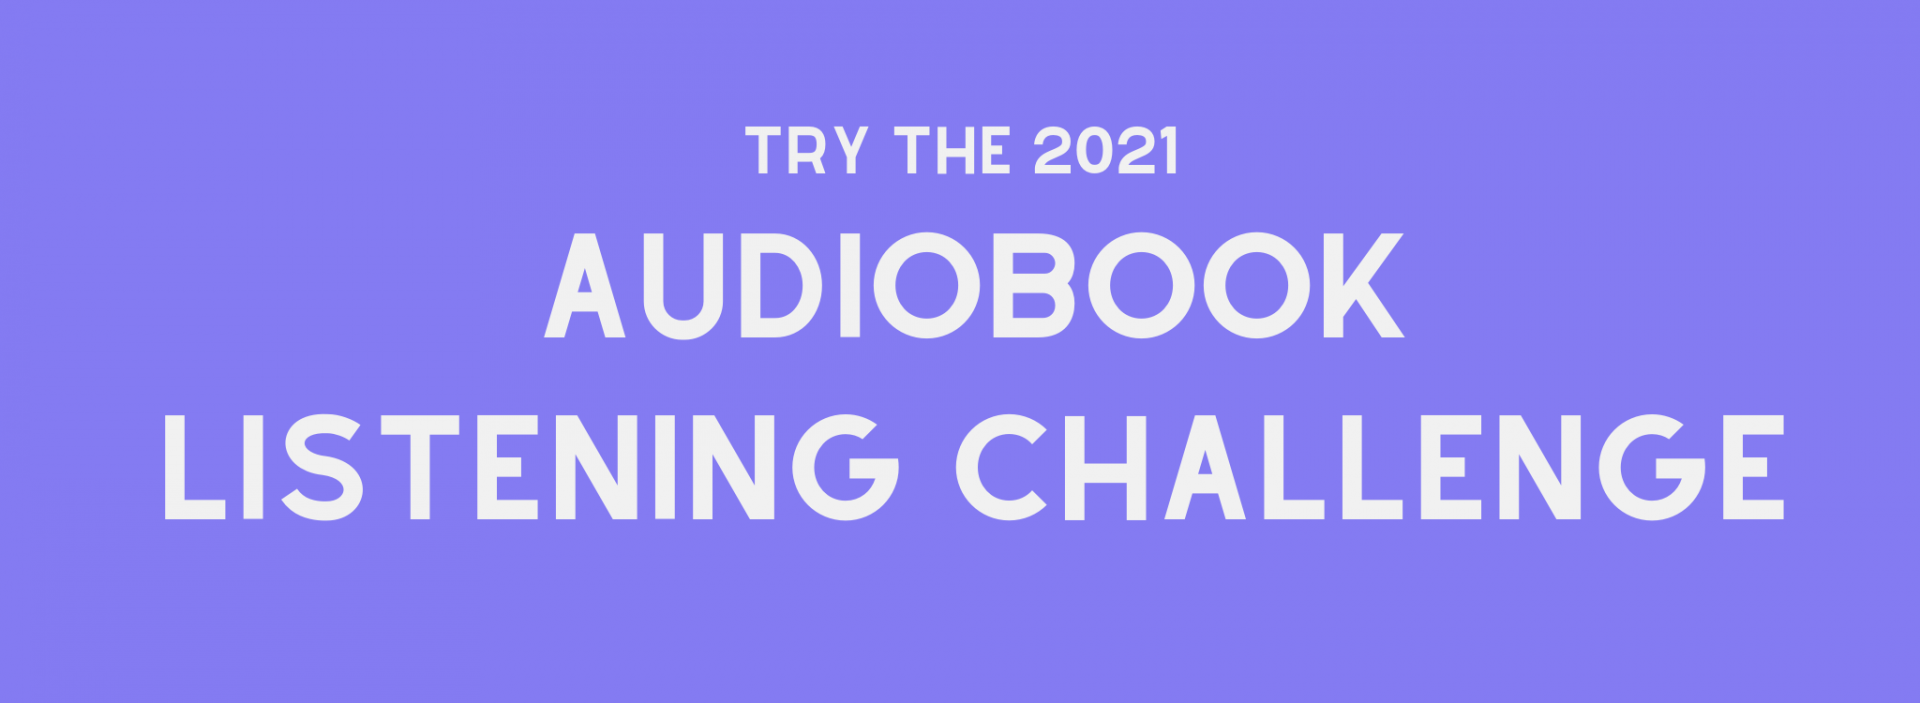 A purple background with white writing that reads Try the 2021 Audiobook Listening Challenge